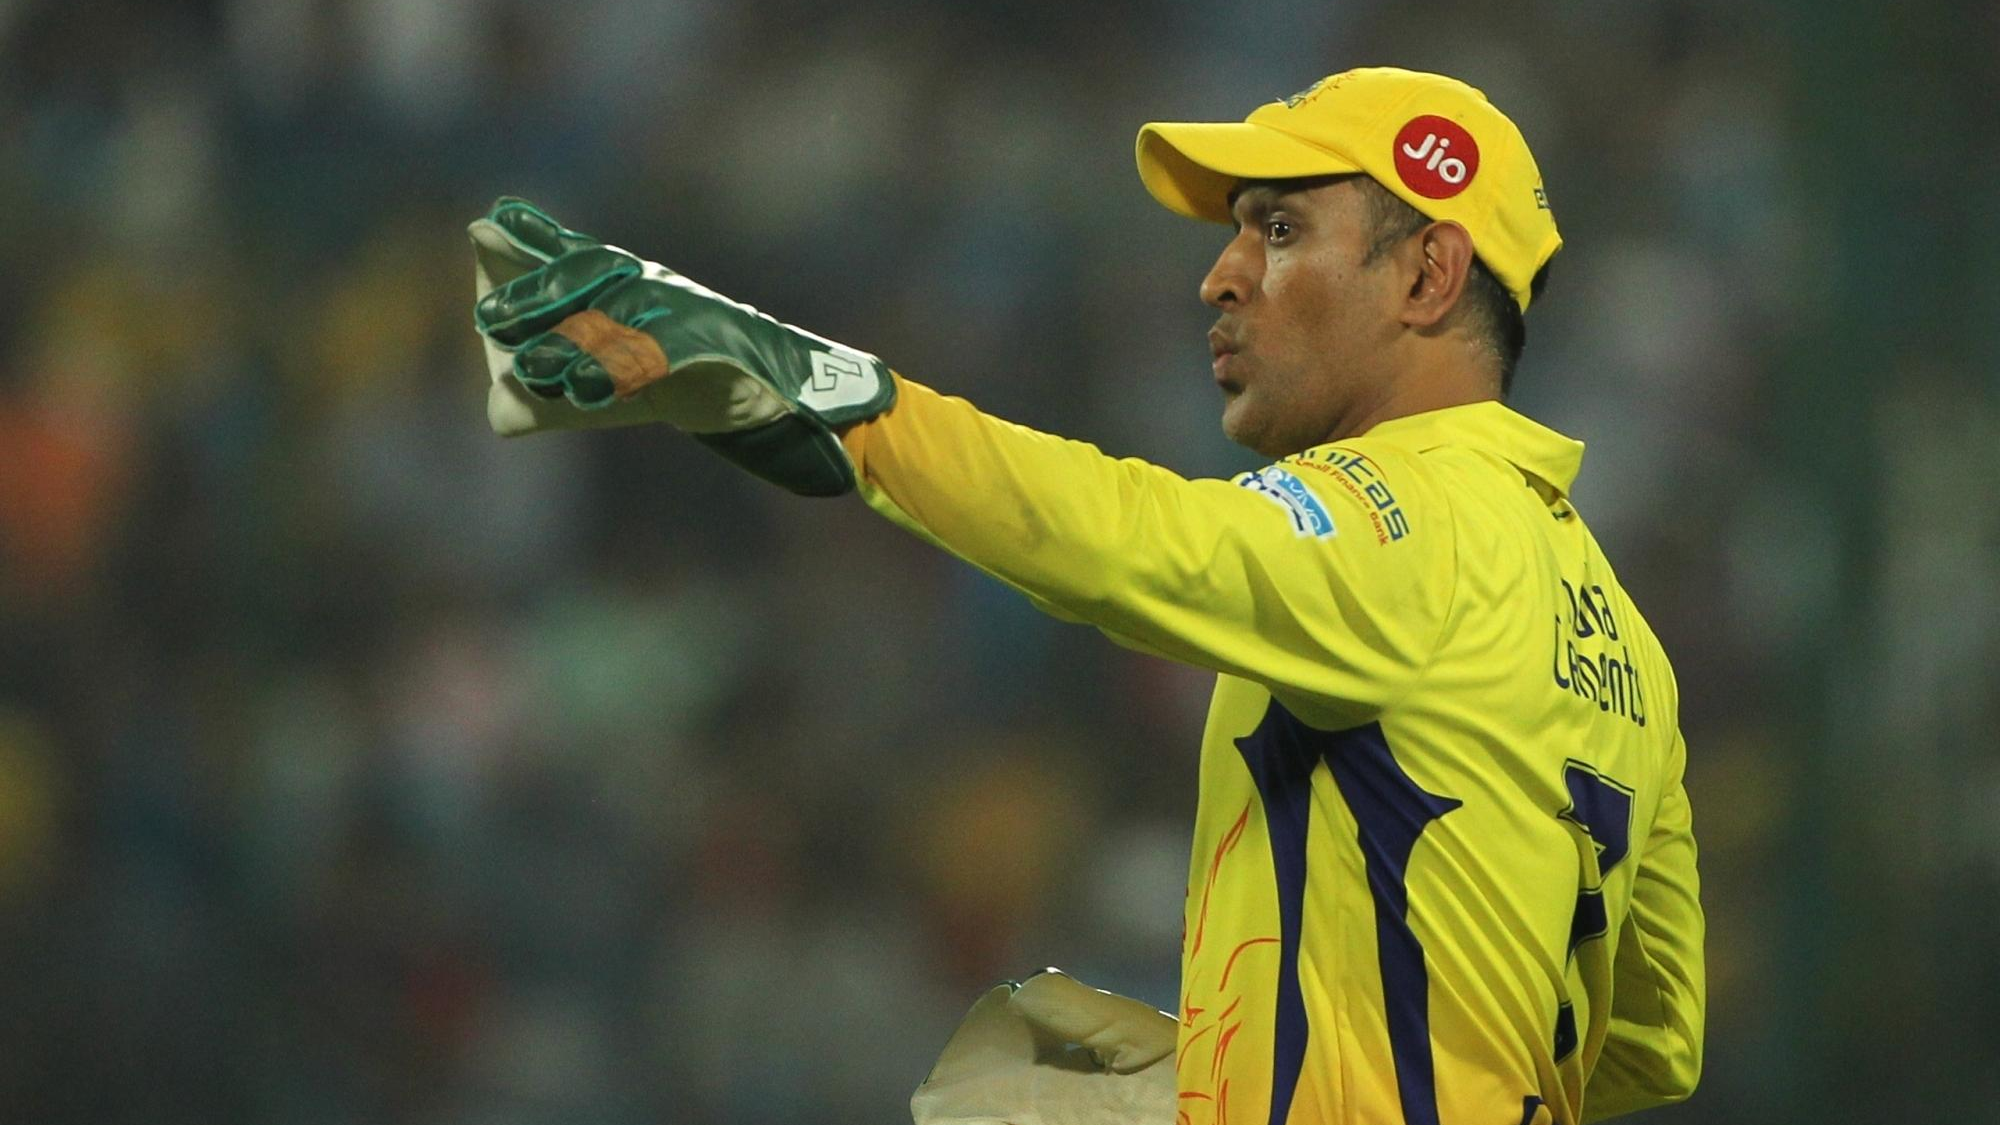 IPL 2018: We've been a very good team and it reflects when it comes to the IPL, says MS Dhoni